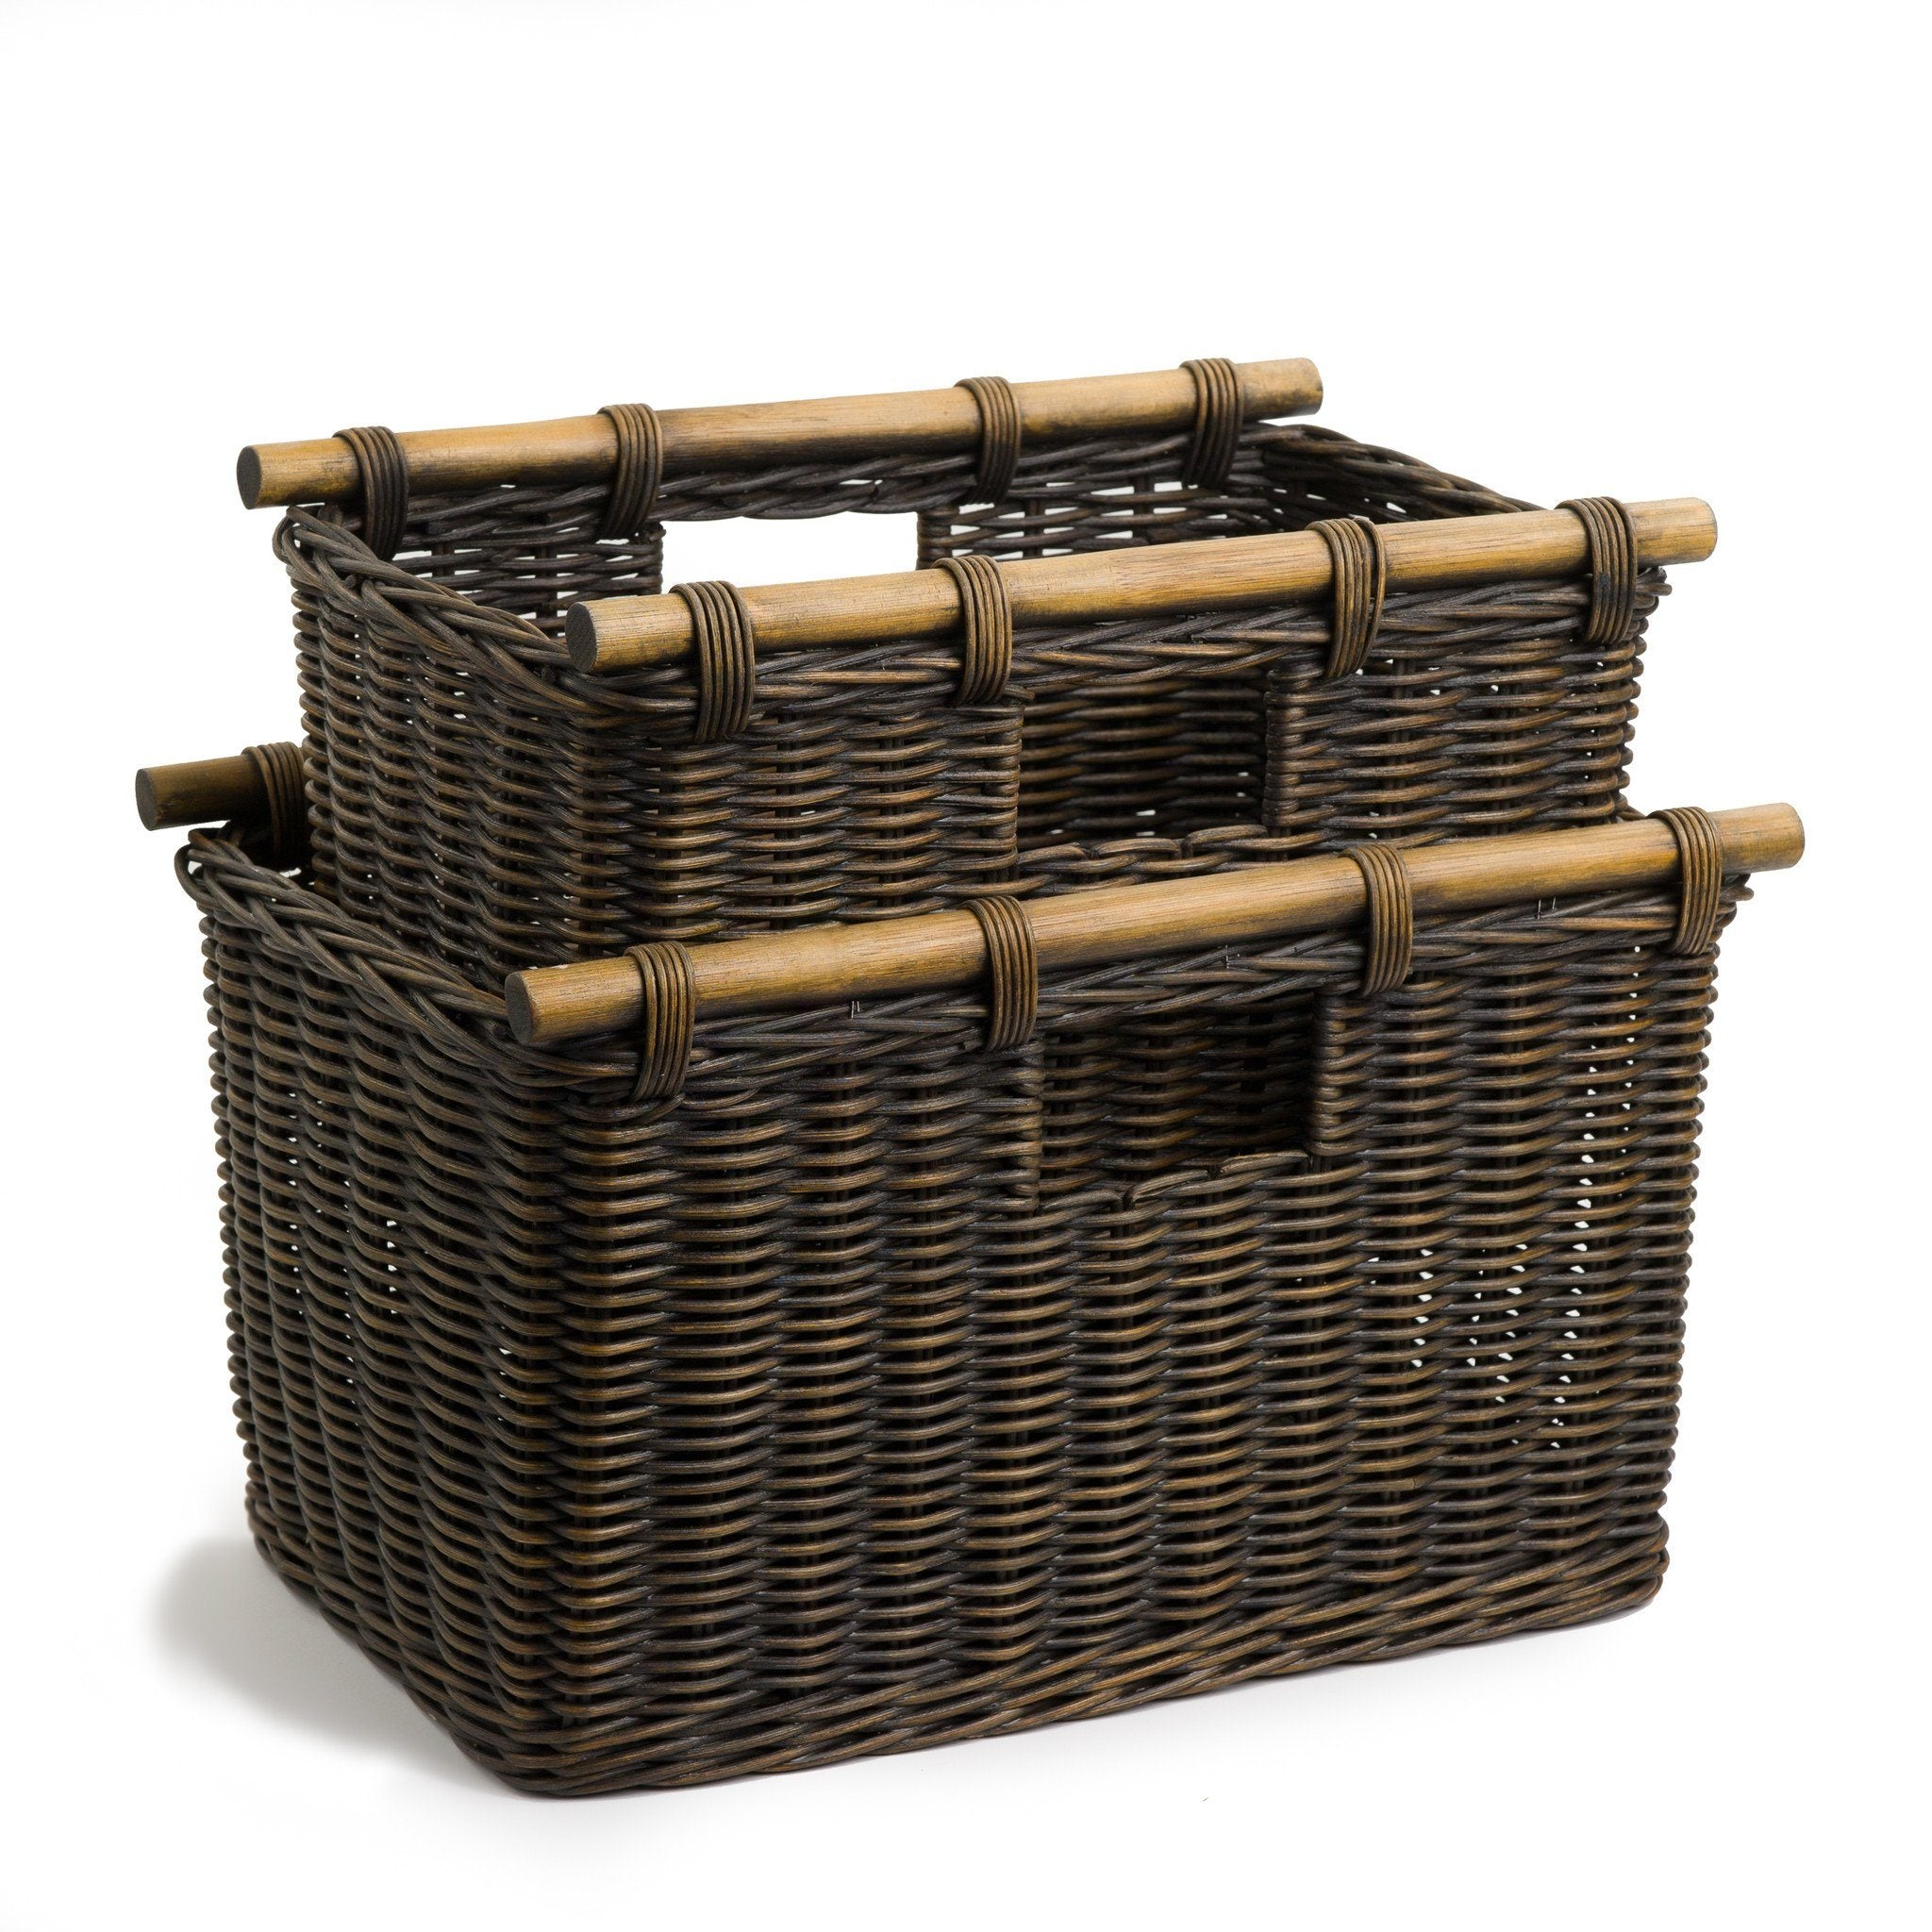 Home underbed storage baskets wicker underbed storage basket - The Basket Lady Tall Narrow Wicker Storage Basket